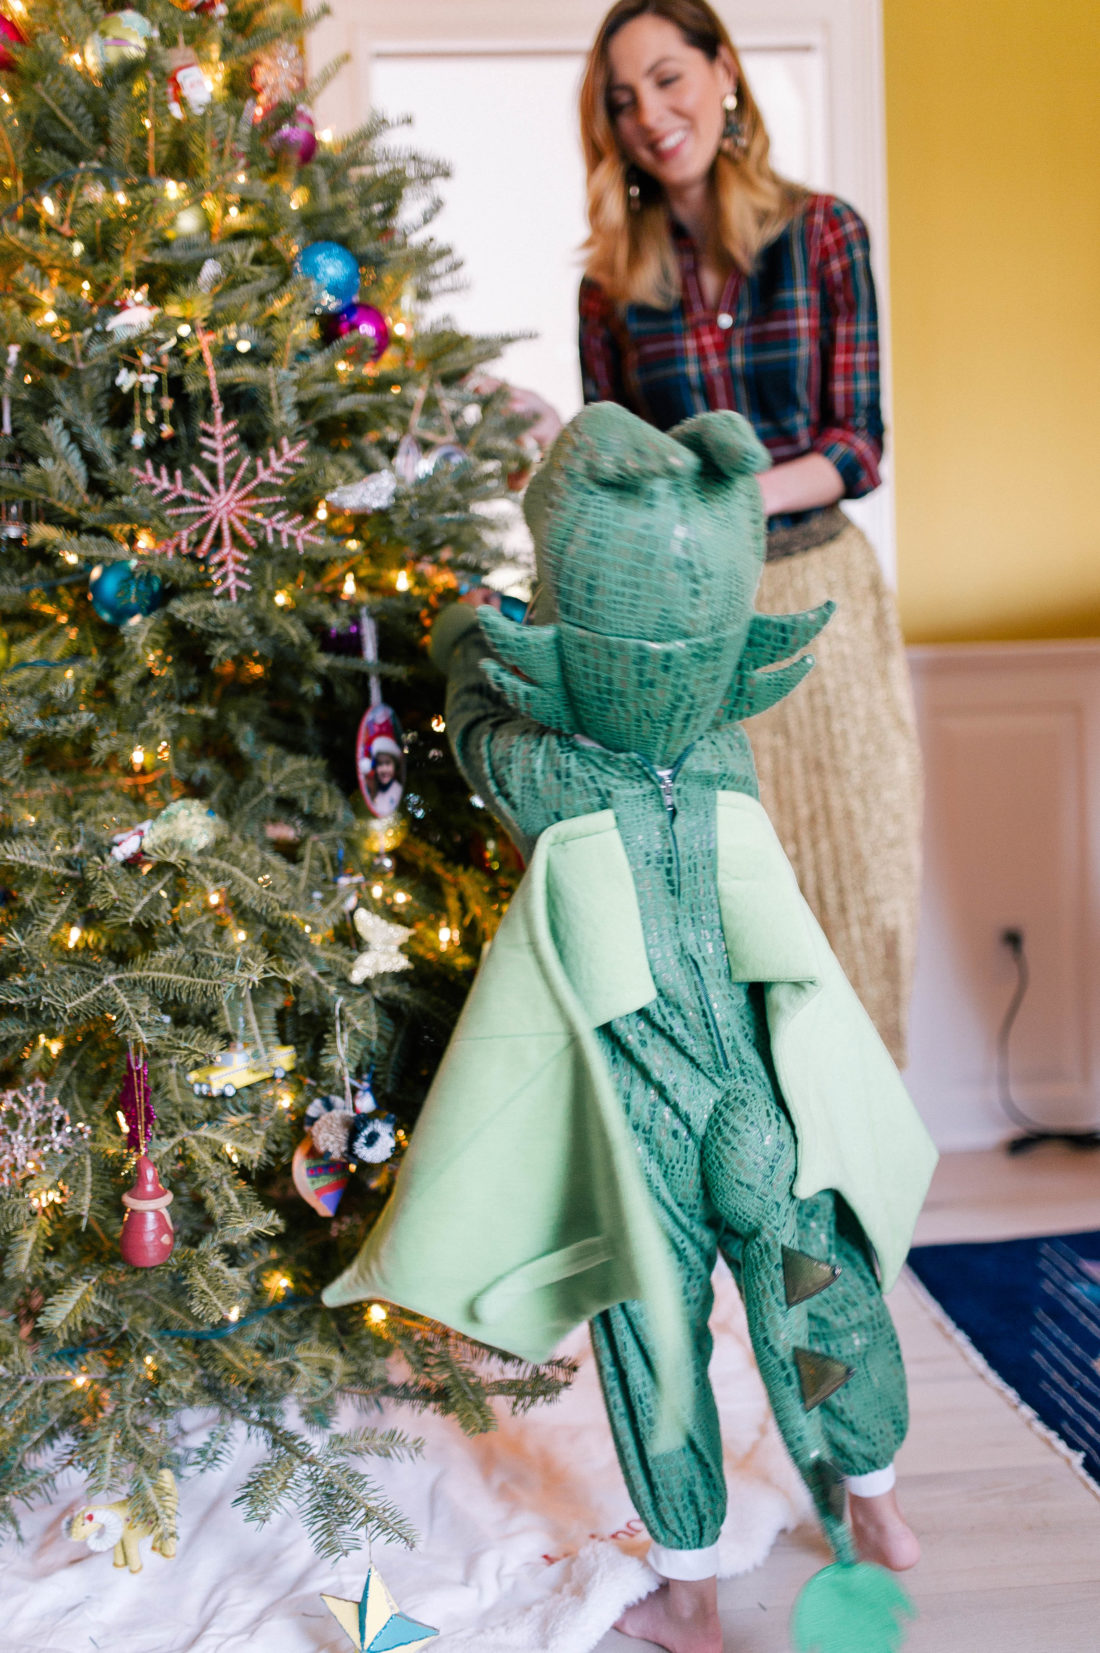 Marlowe Martino dresses up in a dragon costume and decorates the christmas tree